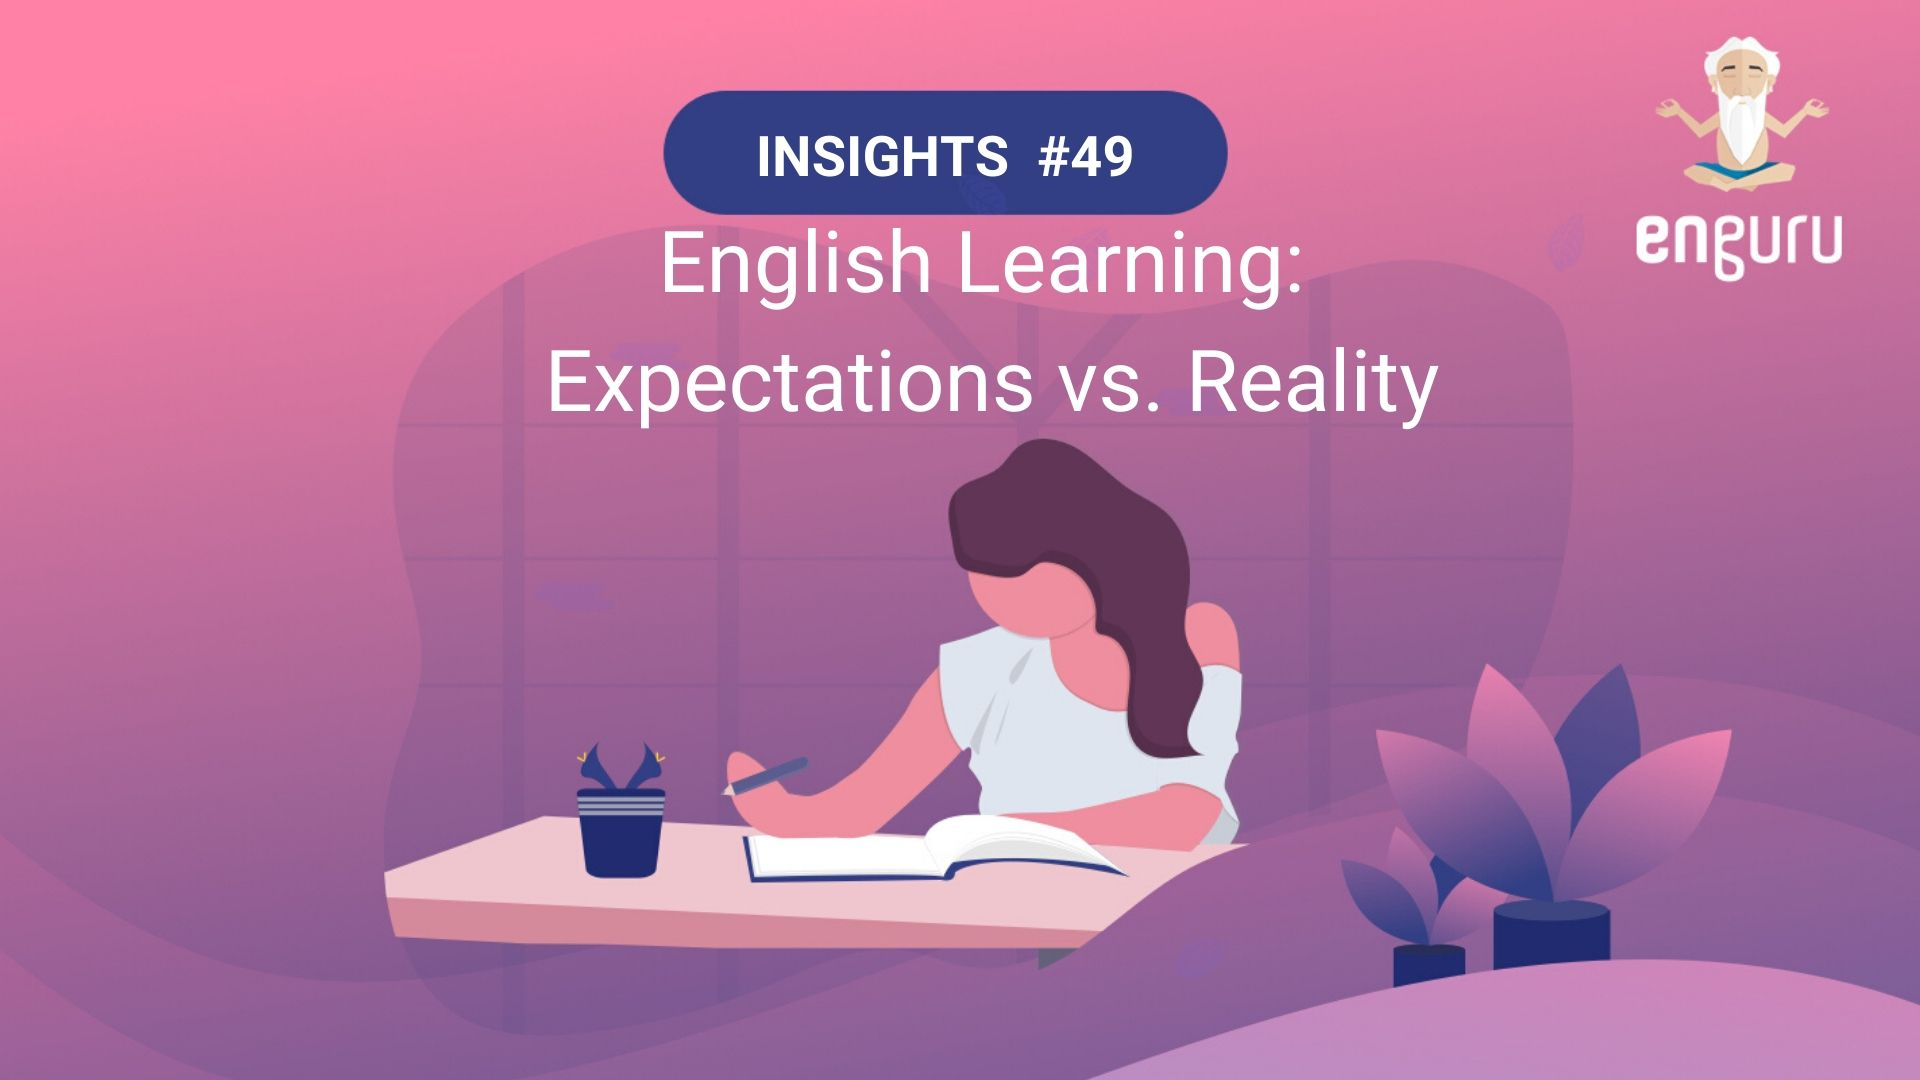 English Learning: Expectations vs. Reality